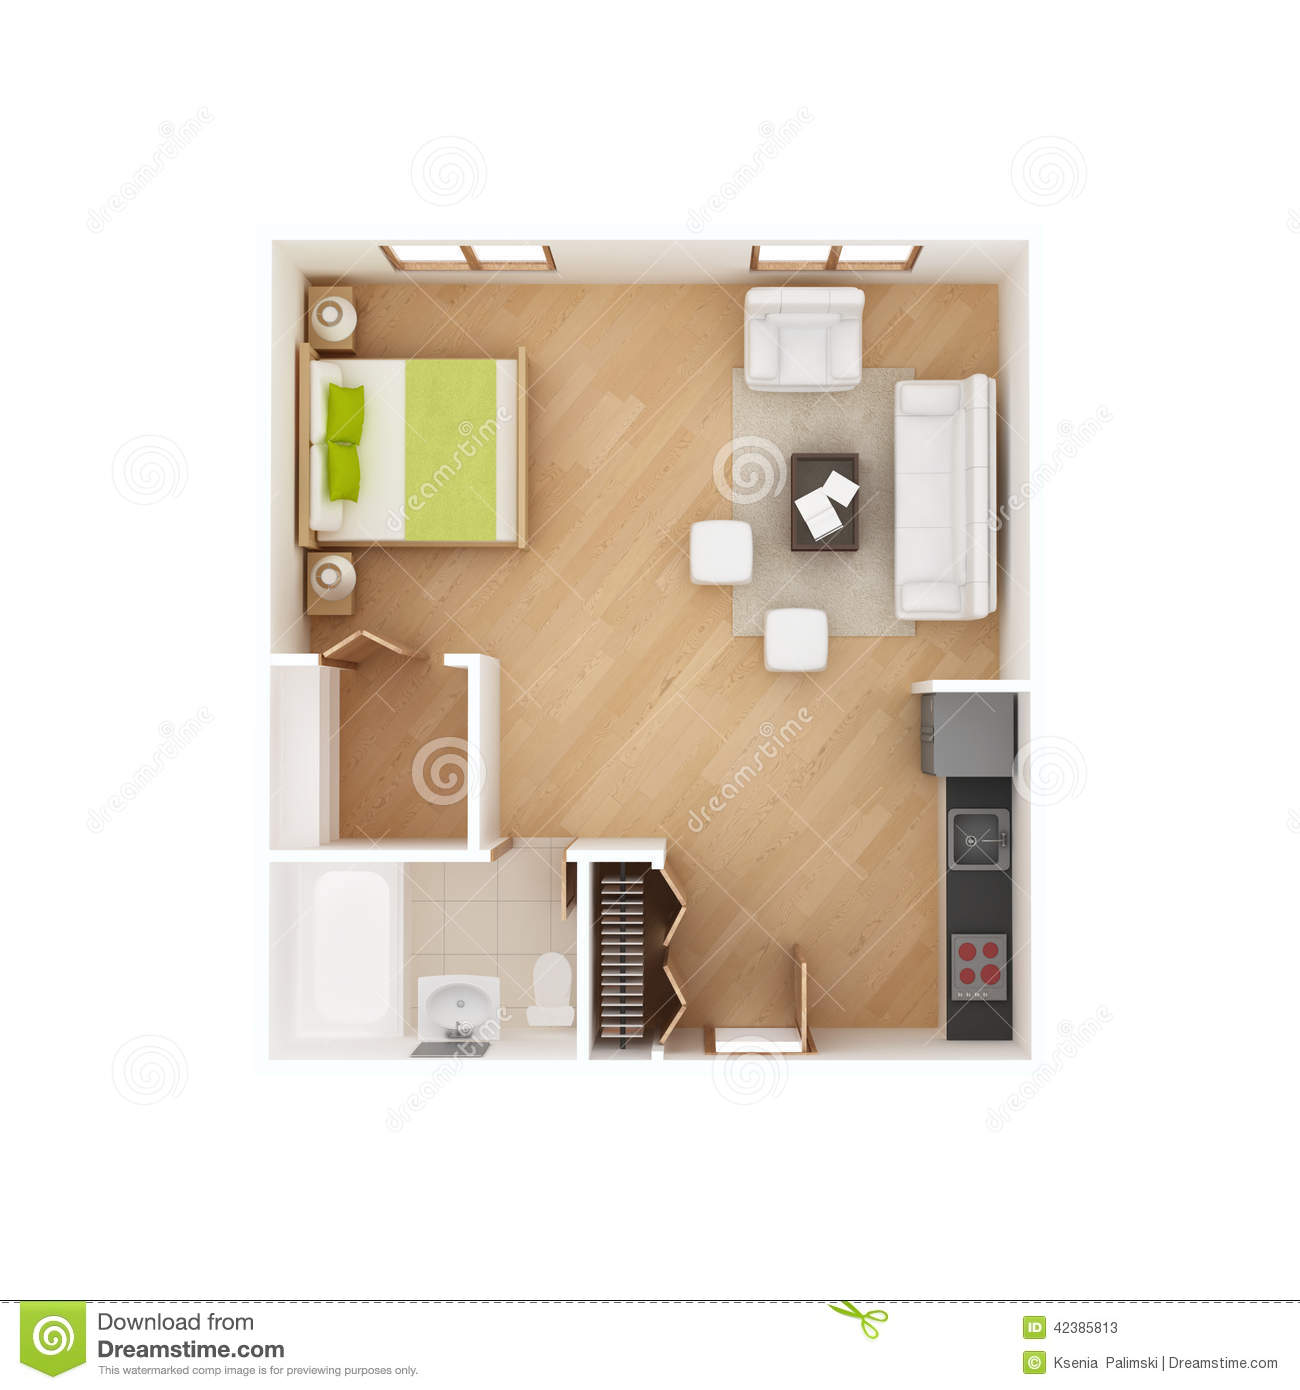 One Square Meter In Square Feet Studio Apartment Floor Plan Isolated On White Stock